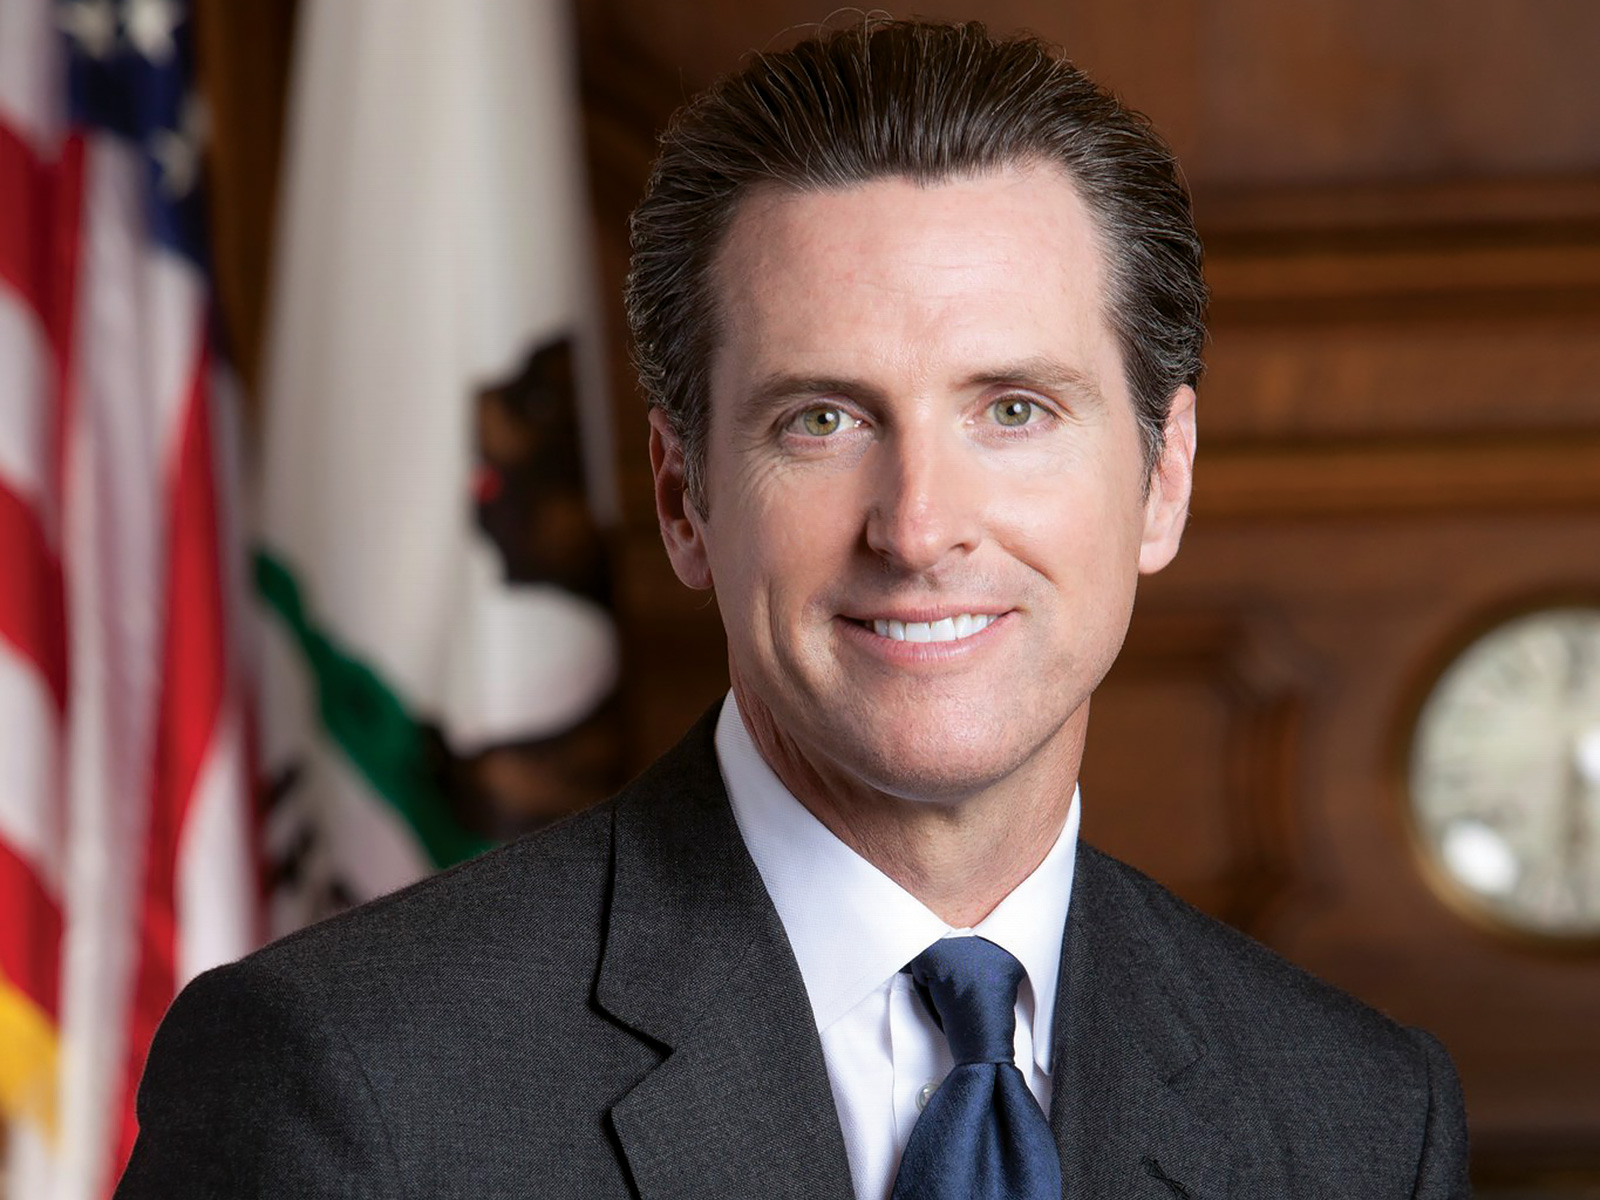 NEWSOM BUDGET EMPHASIZES FIRE RESPONSE, SECURE PENSION SYSTEM - LEGISLATIVE ISSUES